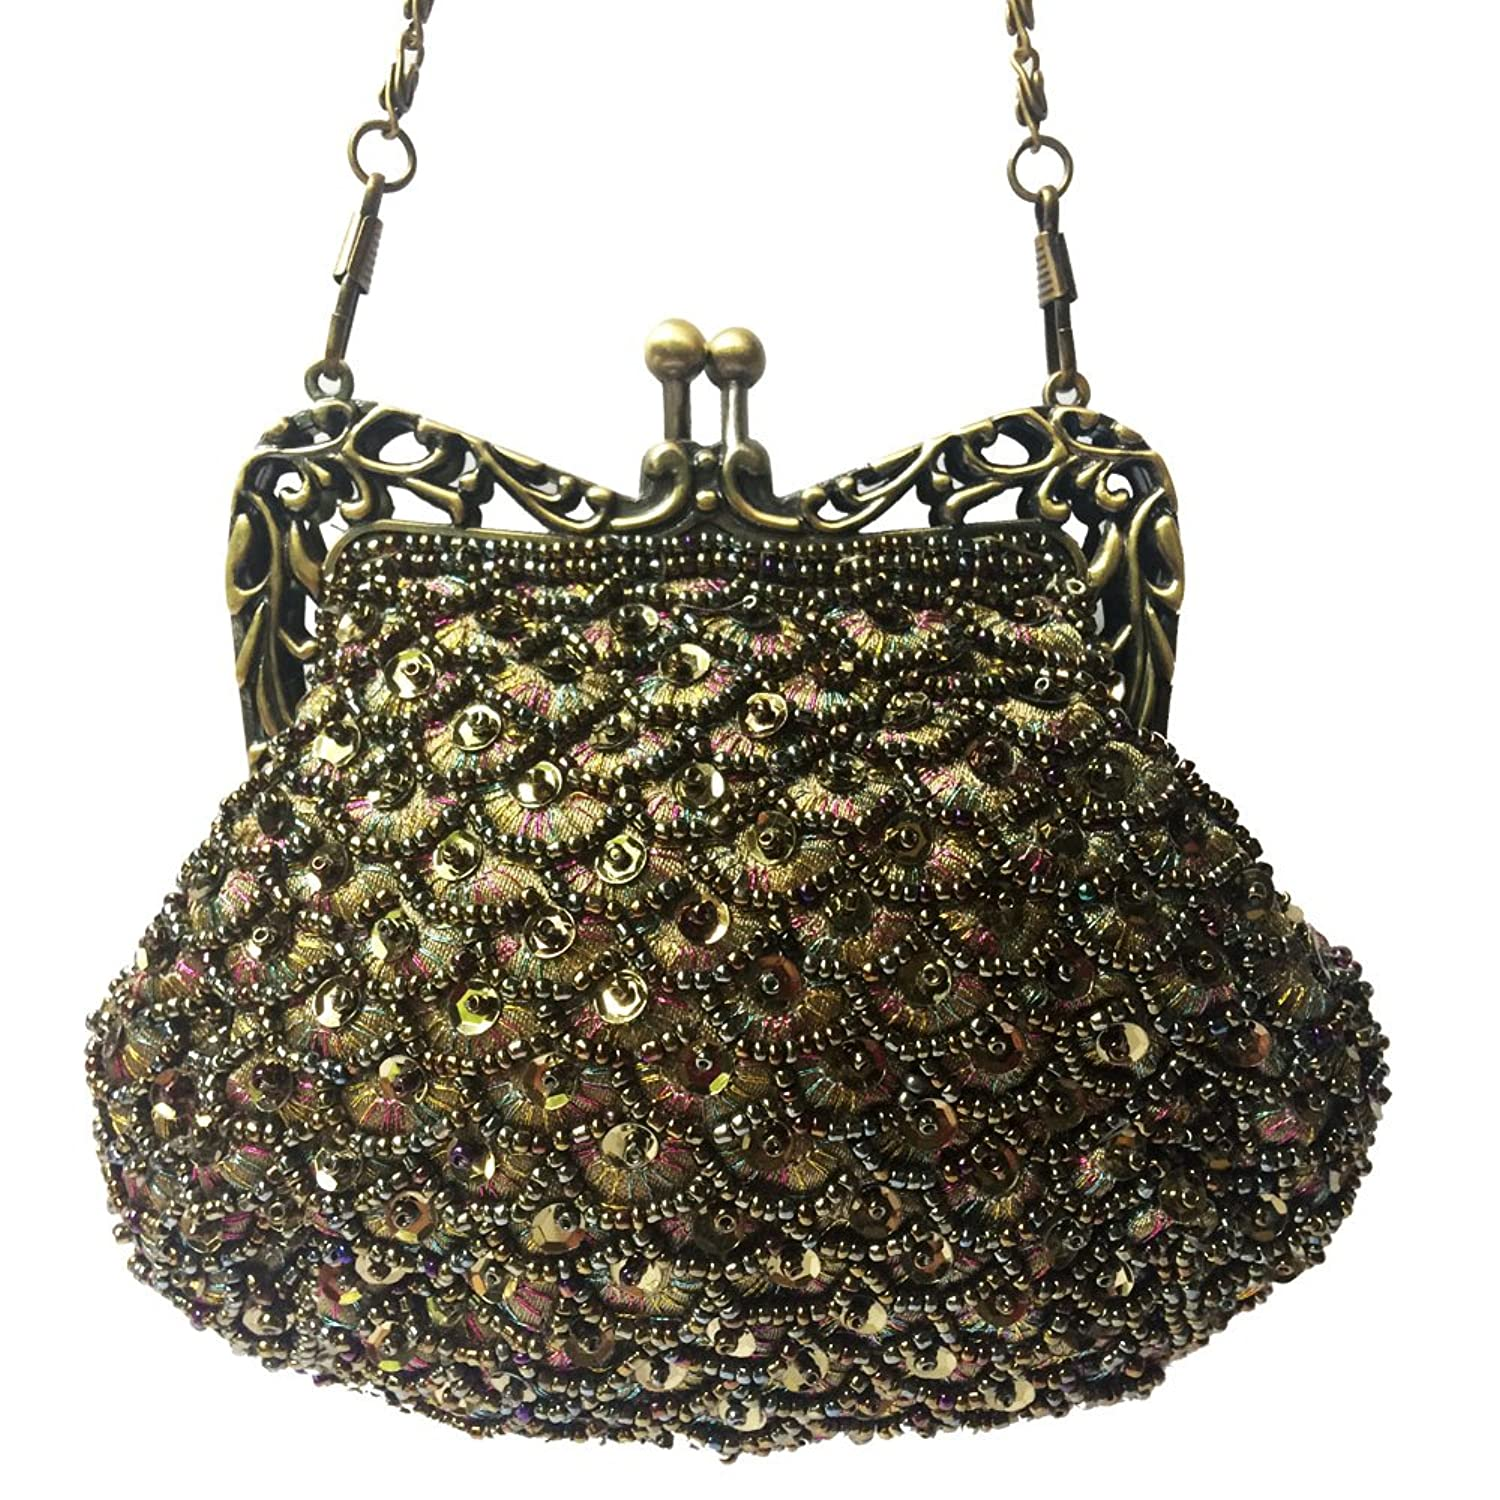 Retro Handbags, Purses, Wallets, Bags Great Gatsby Style Fully Beaded Vintage Evening Bag Party Clutch Small Coin Purse (olive) $19.97 AT vintagedancer.com